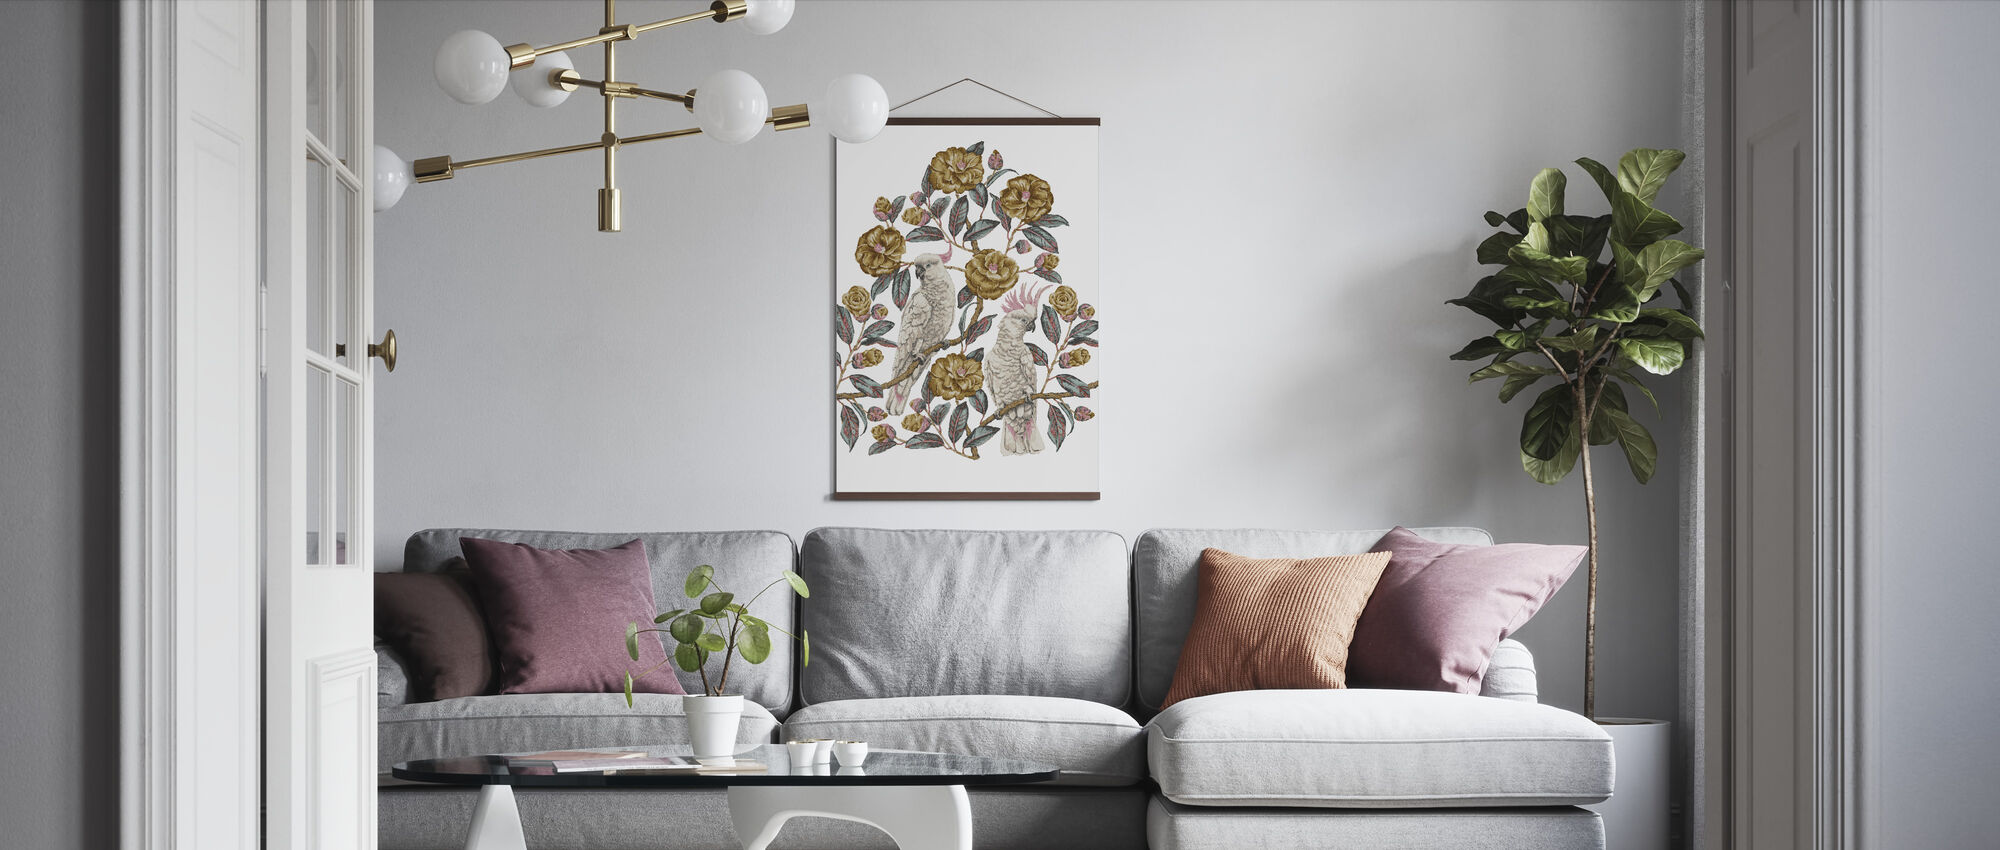 Cockatoo Paradise - Honey and Silver - Poster - Living Room